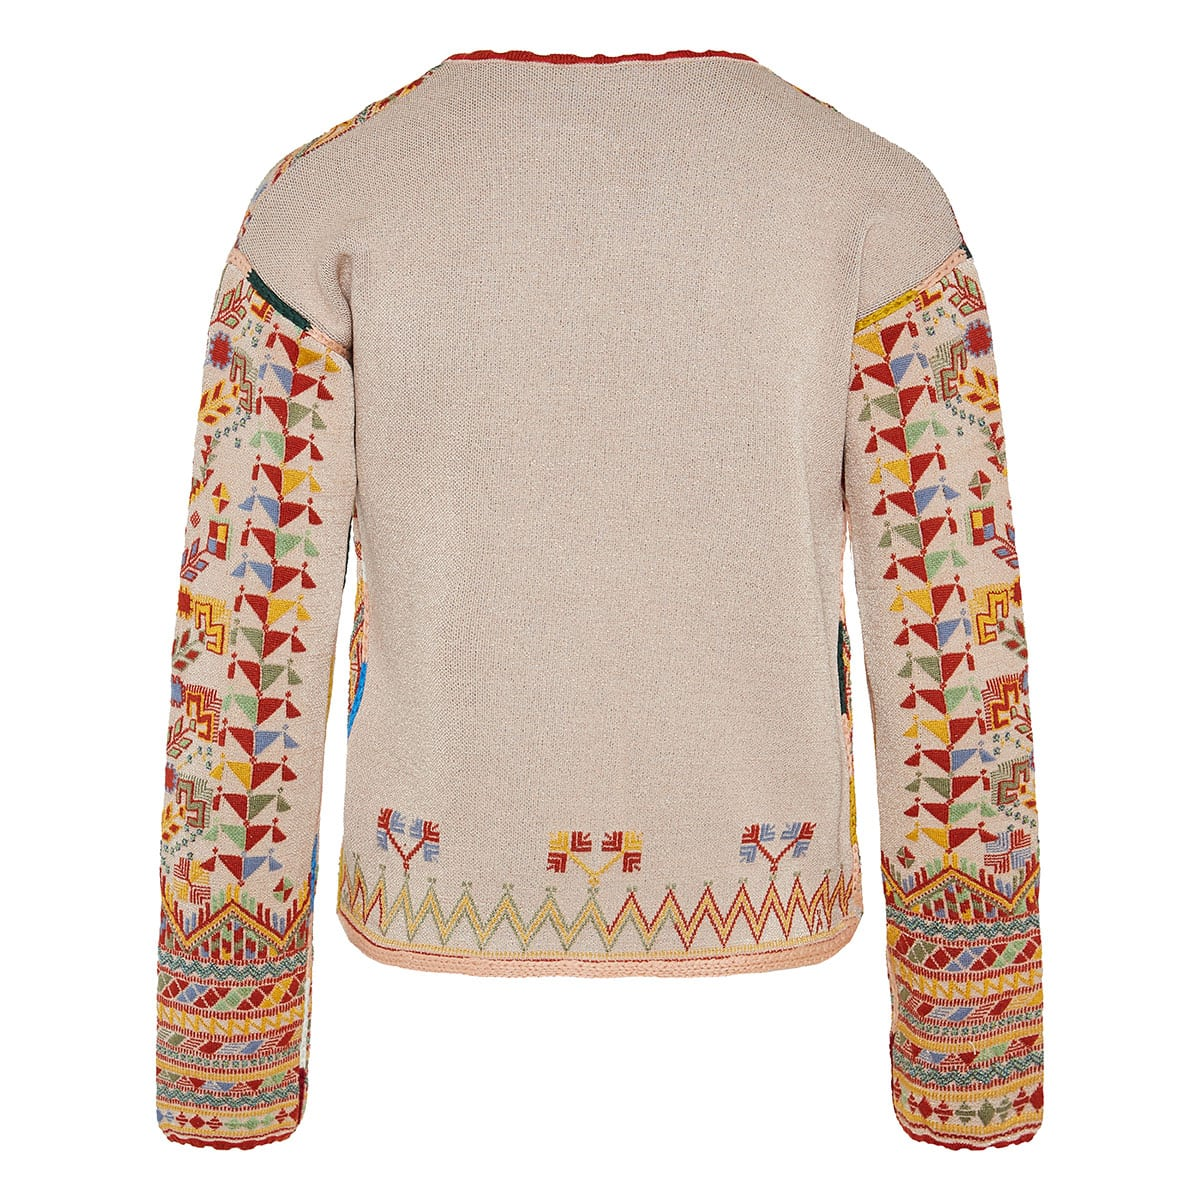 Ethnic print jacquard knitted jacket